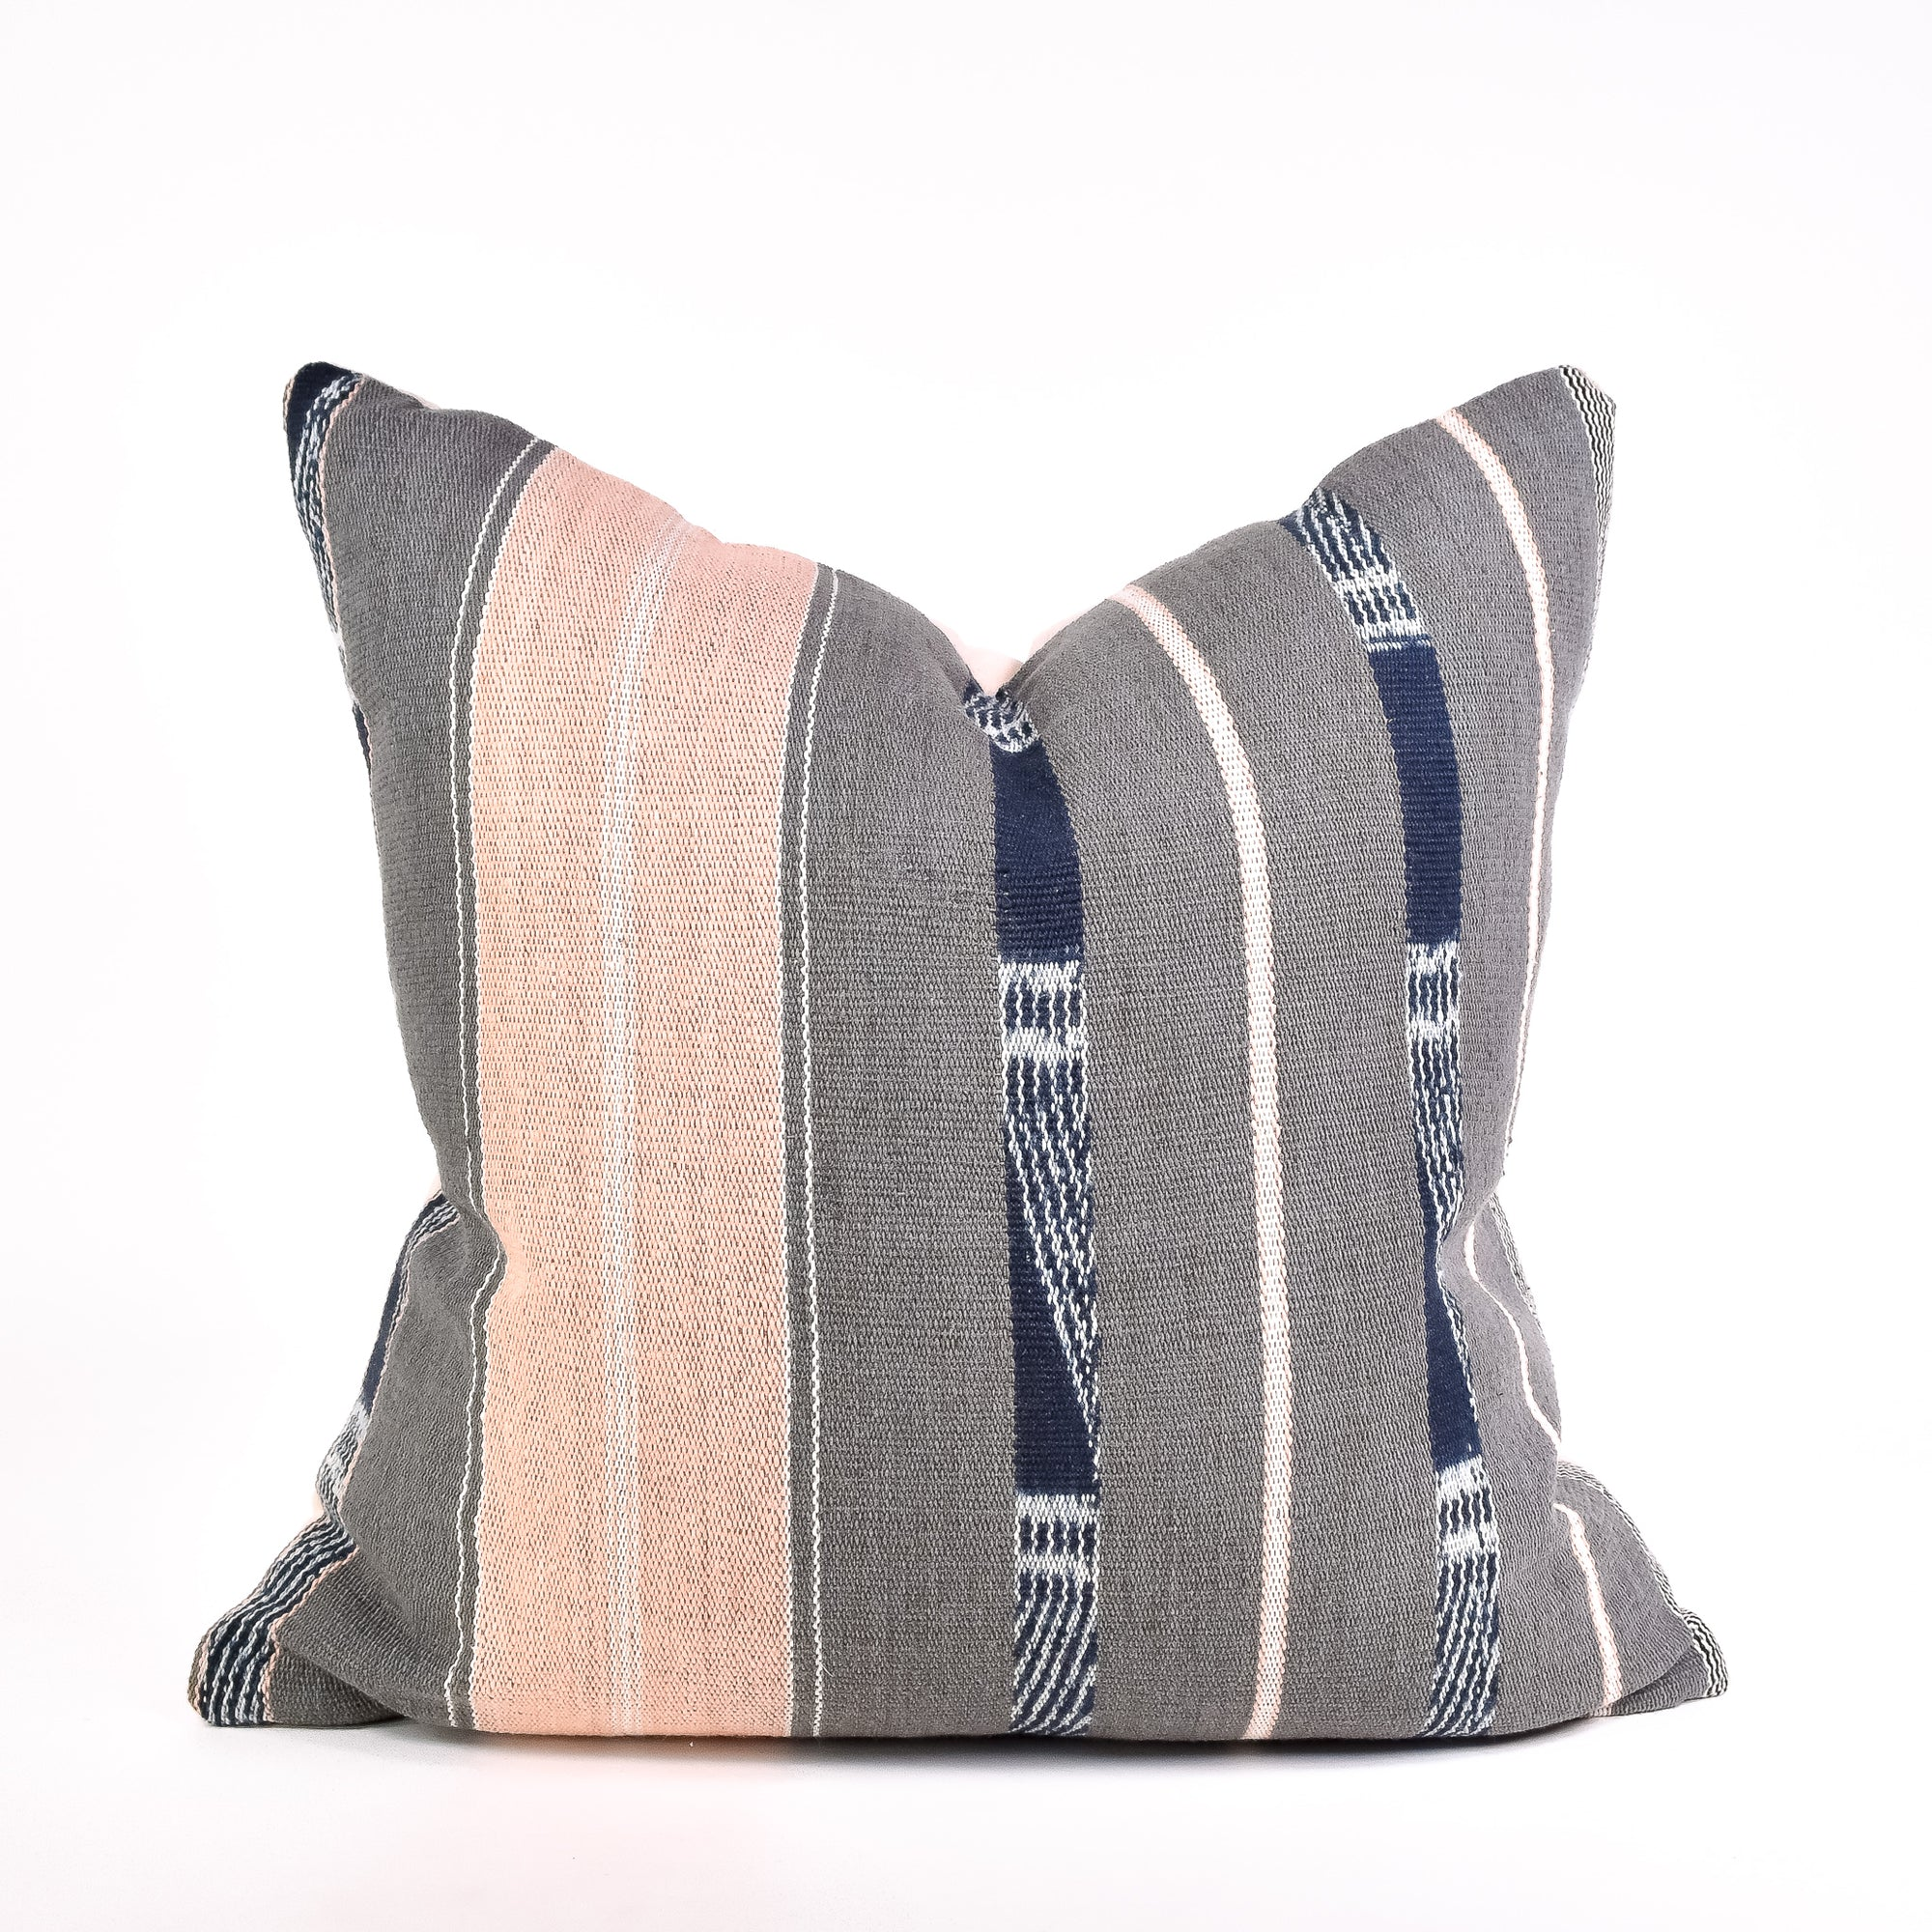 Lua Pillow - Rug & Weave